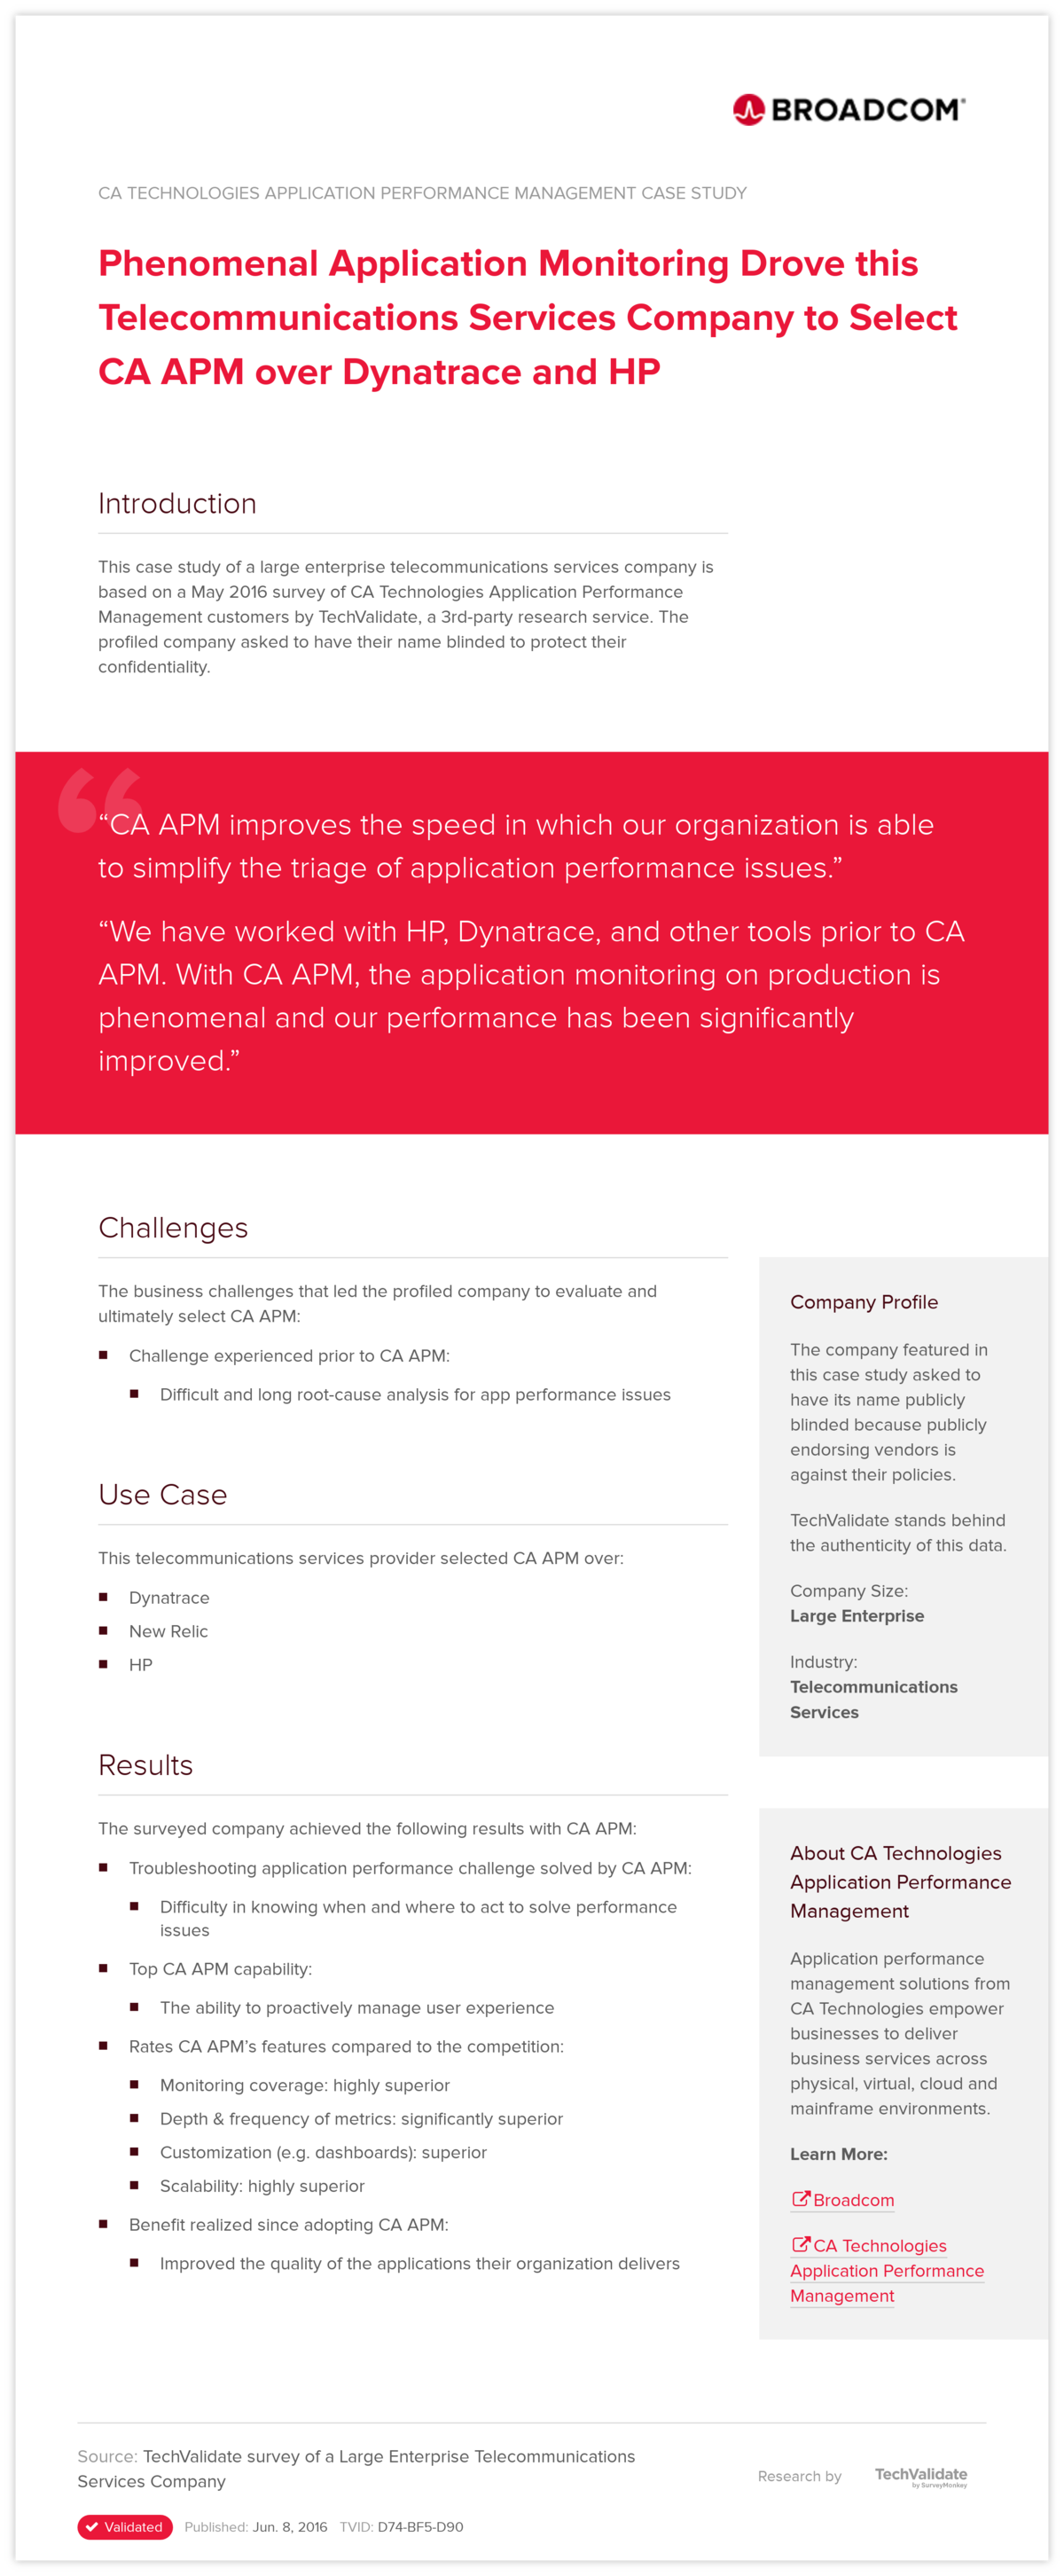 Phenomenal Application Monitoring Drove this Telecommunications Services Company to Select CA APM over Dynatrace and HP